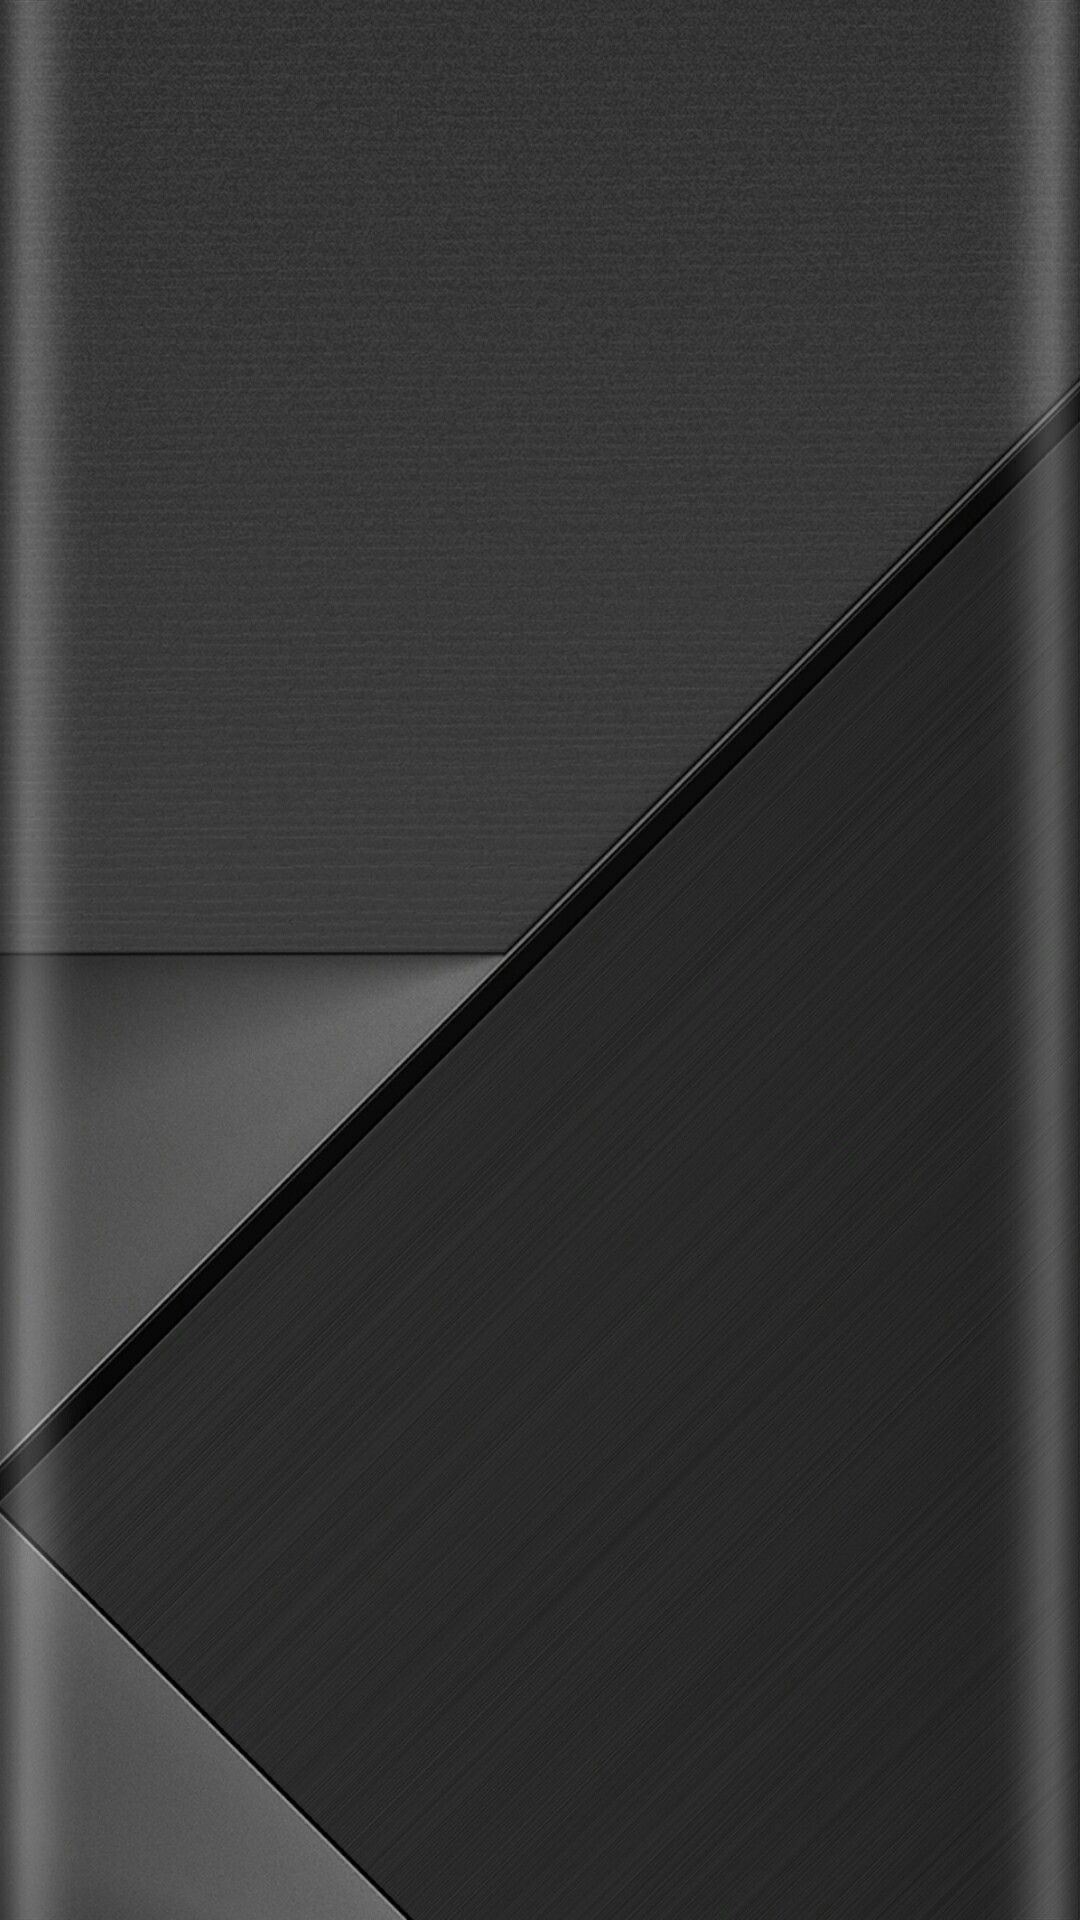 Slate Shades of Grey Wallpaper Black phone wallpaper